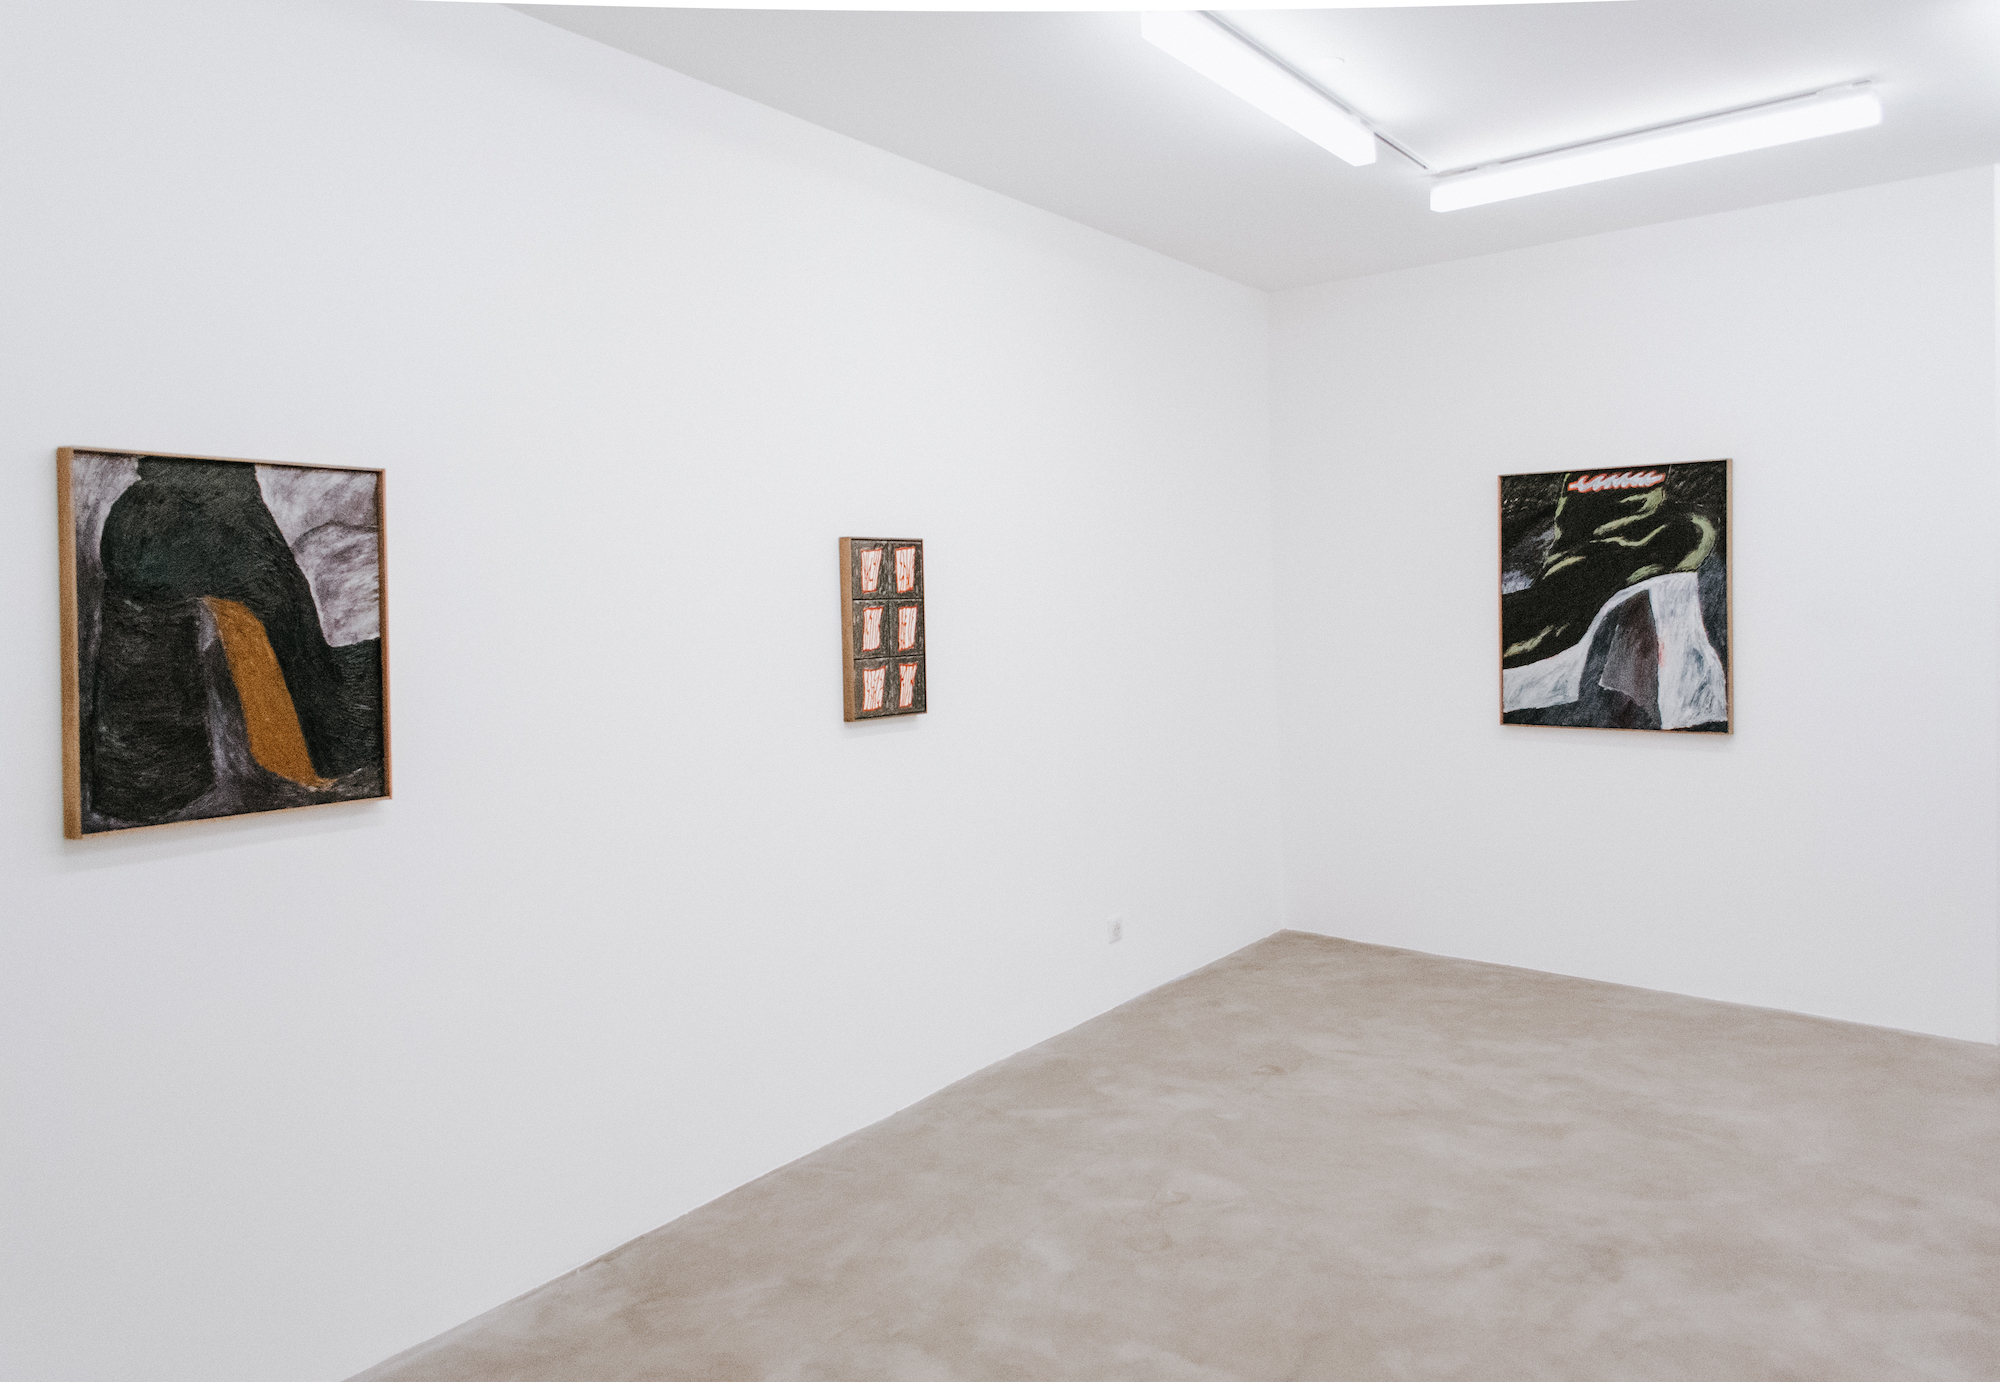 Exhibition view of The nearer the ground, the louder it sounds, Stevie Dix, 2020 © GALERIE CHLOE SALGADO and Stevie Dix